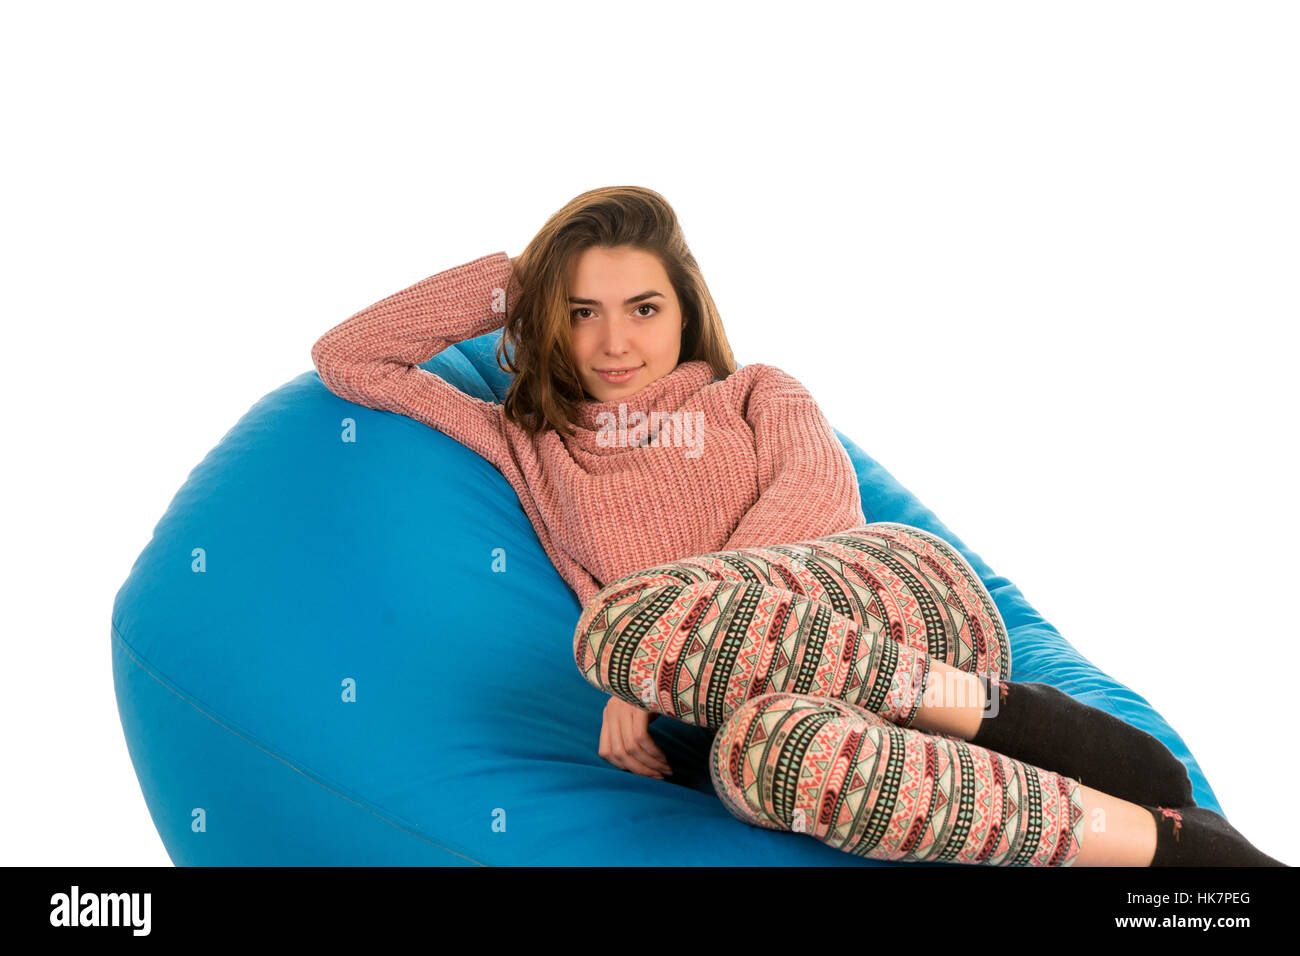 Beautiful woman lying on blue beanbag sofa for living room or other room isolated on white background - Stock Image